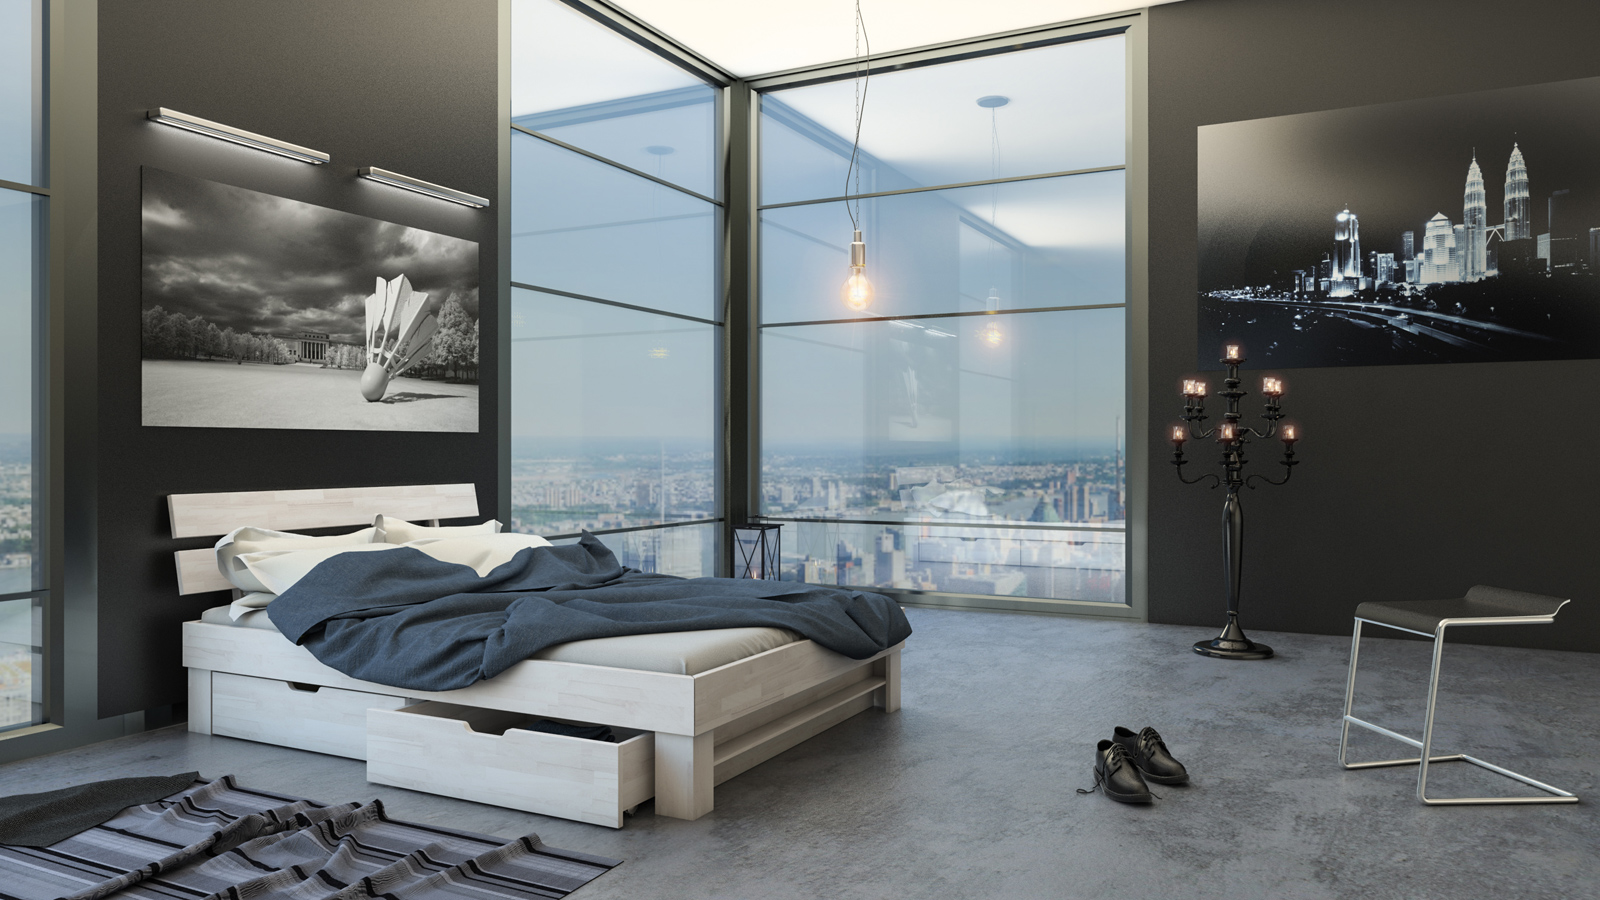 sam massivholzbett 180 x 200 cm buche wei mit bettk sten julia demn chst. Black Bedroom Furniture Sets. Home Design Ideas